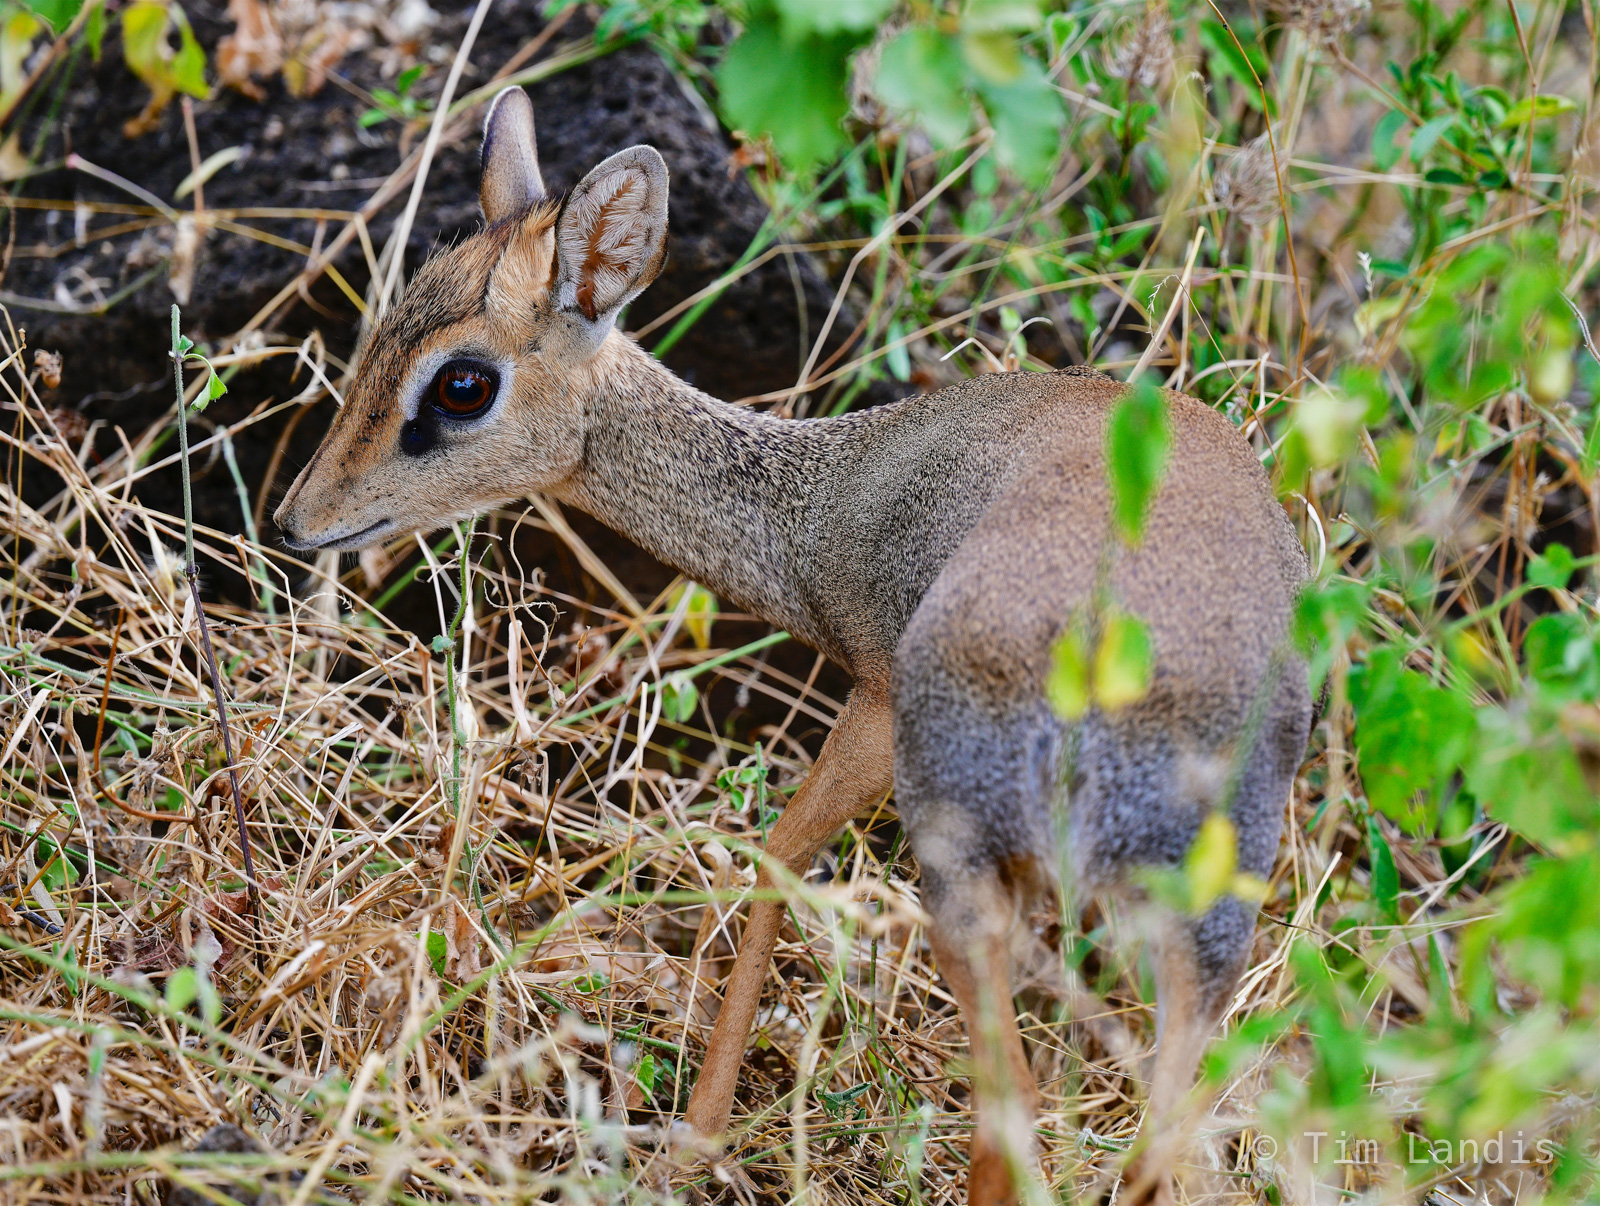 Dik-dik, a deer 18 inches tall, second smallest member of the deer family, photo